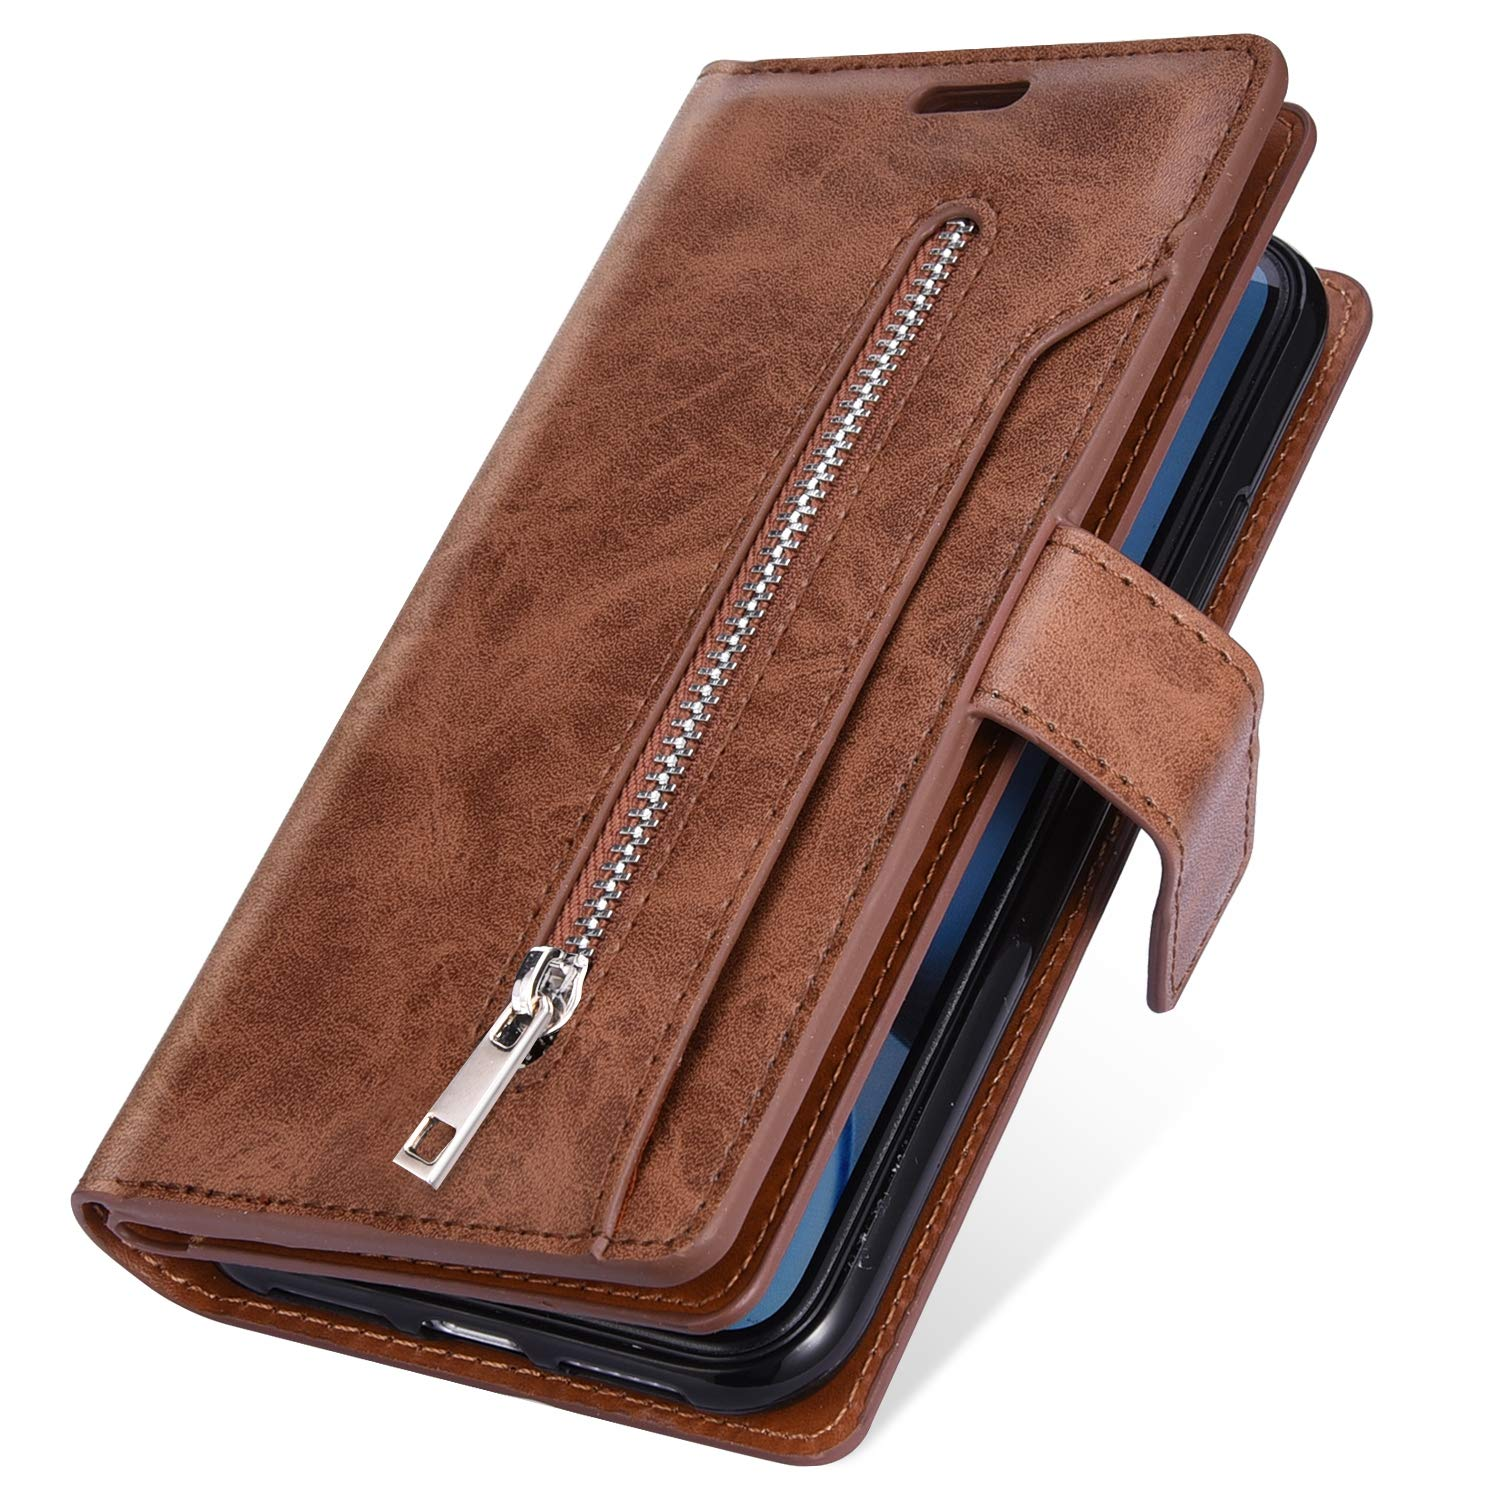 Uposao Compatible with Samsung Galaxy A70 Leather Case Men Women Luxury Premium Multi-functional Handbag Wallet Folio Flip Case with 9 Card Slot and Wrist Strap Stand Magnetic,Blue